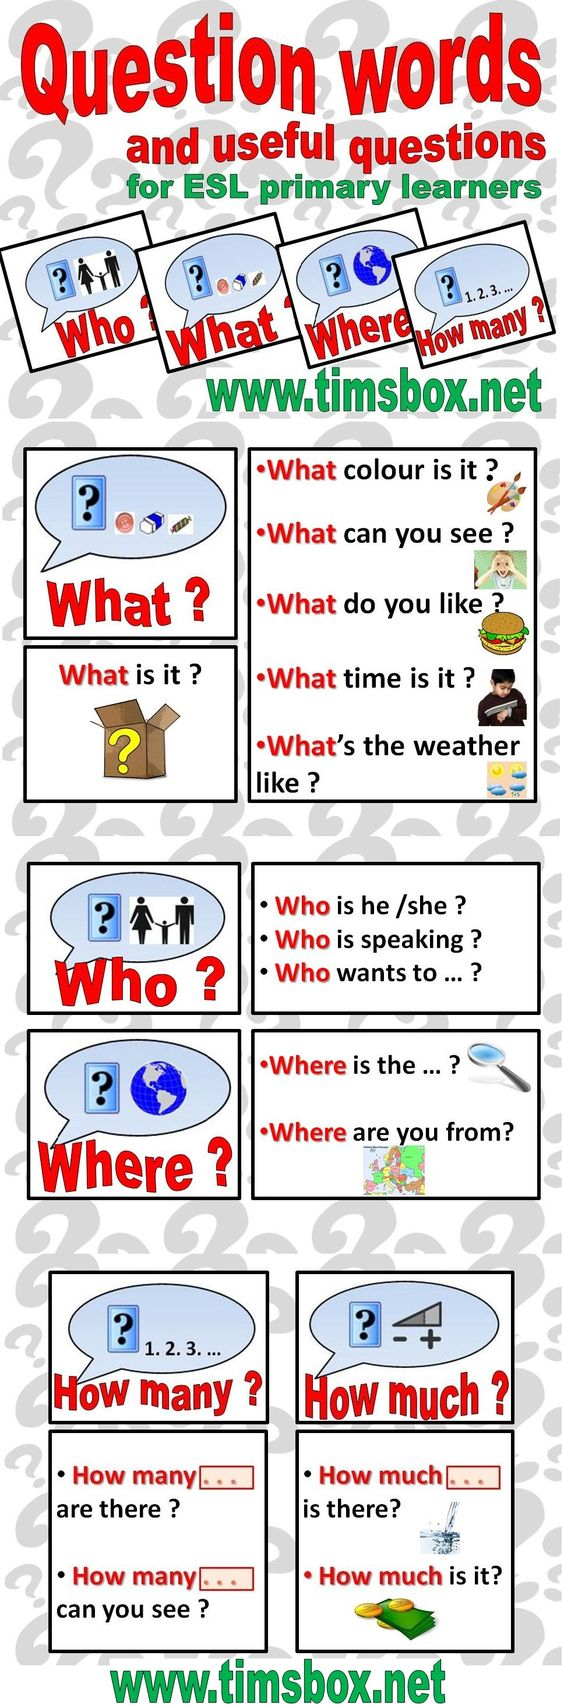 esl question words and useful questions - Primary ESL learners